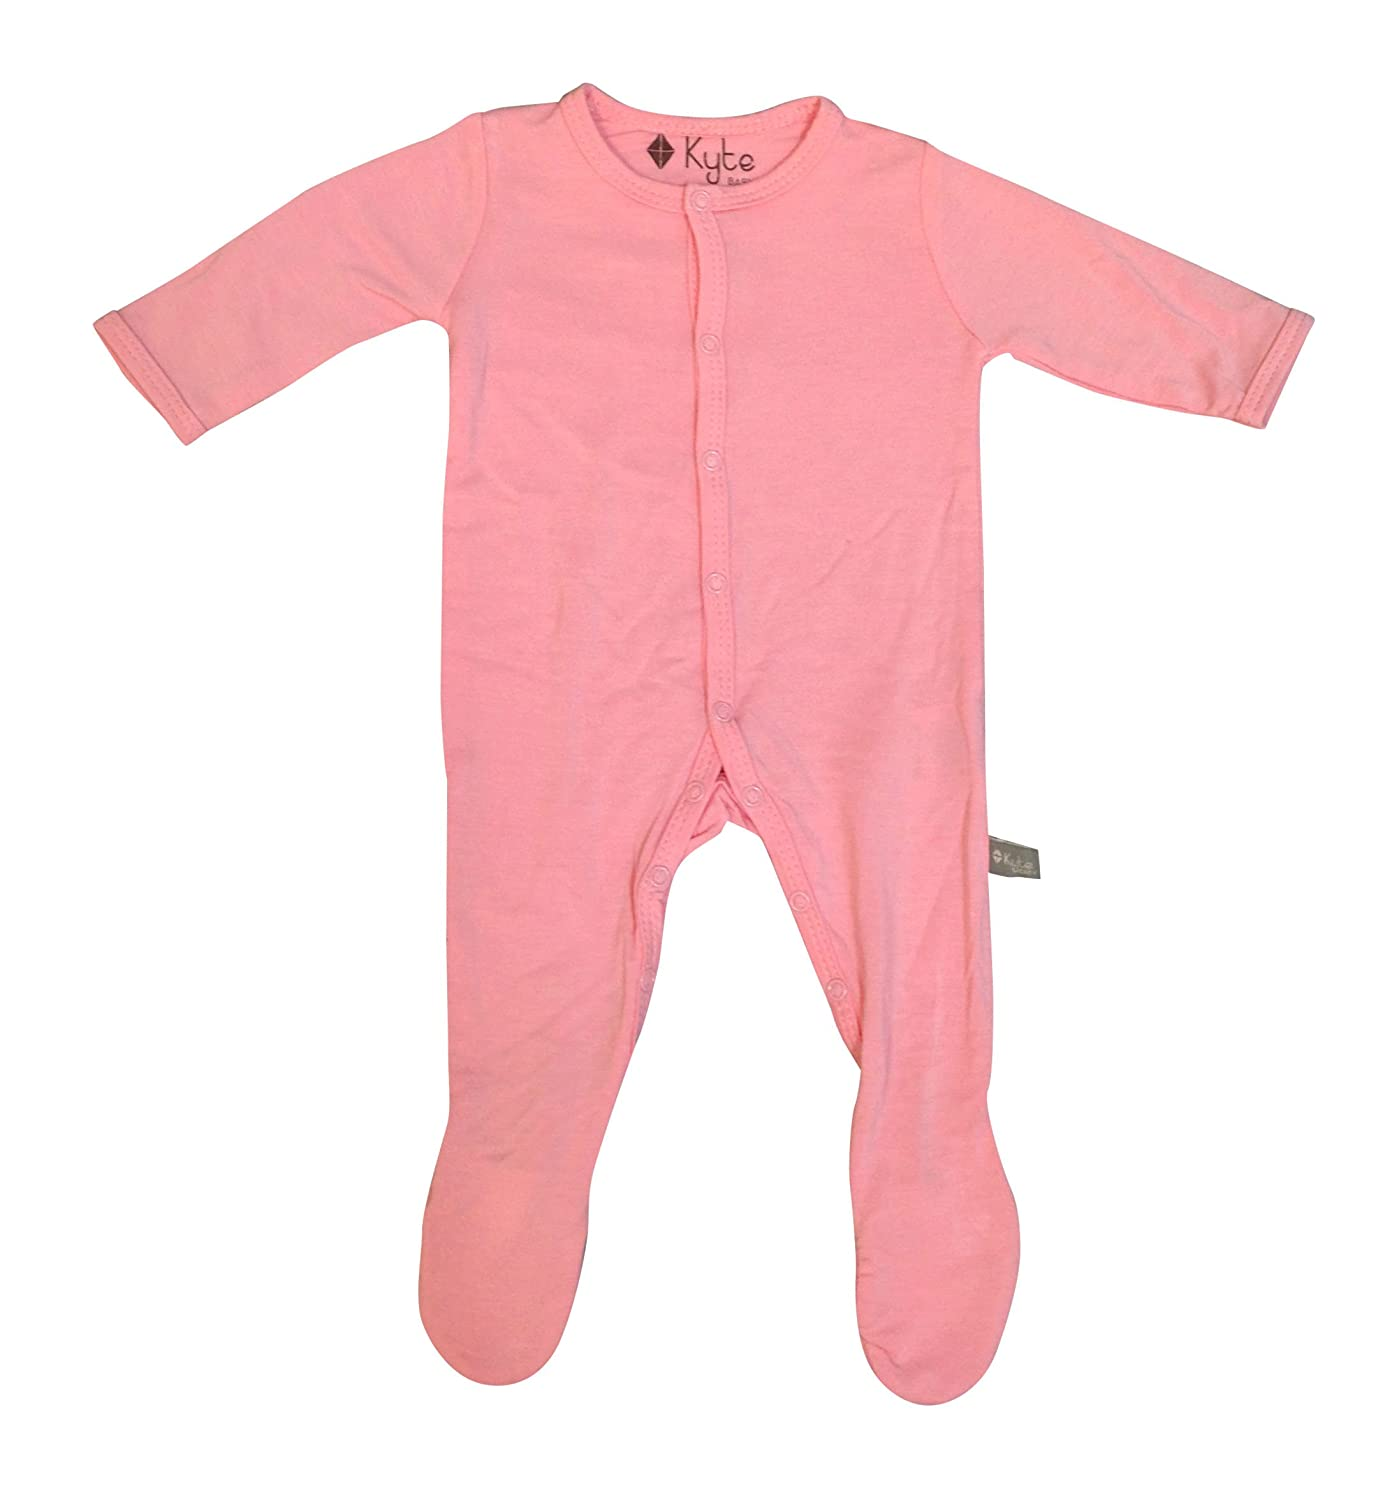 KYTE BABY Solid Footies (Newborn, Petal)